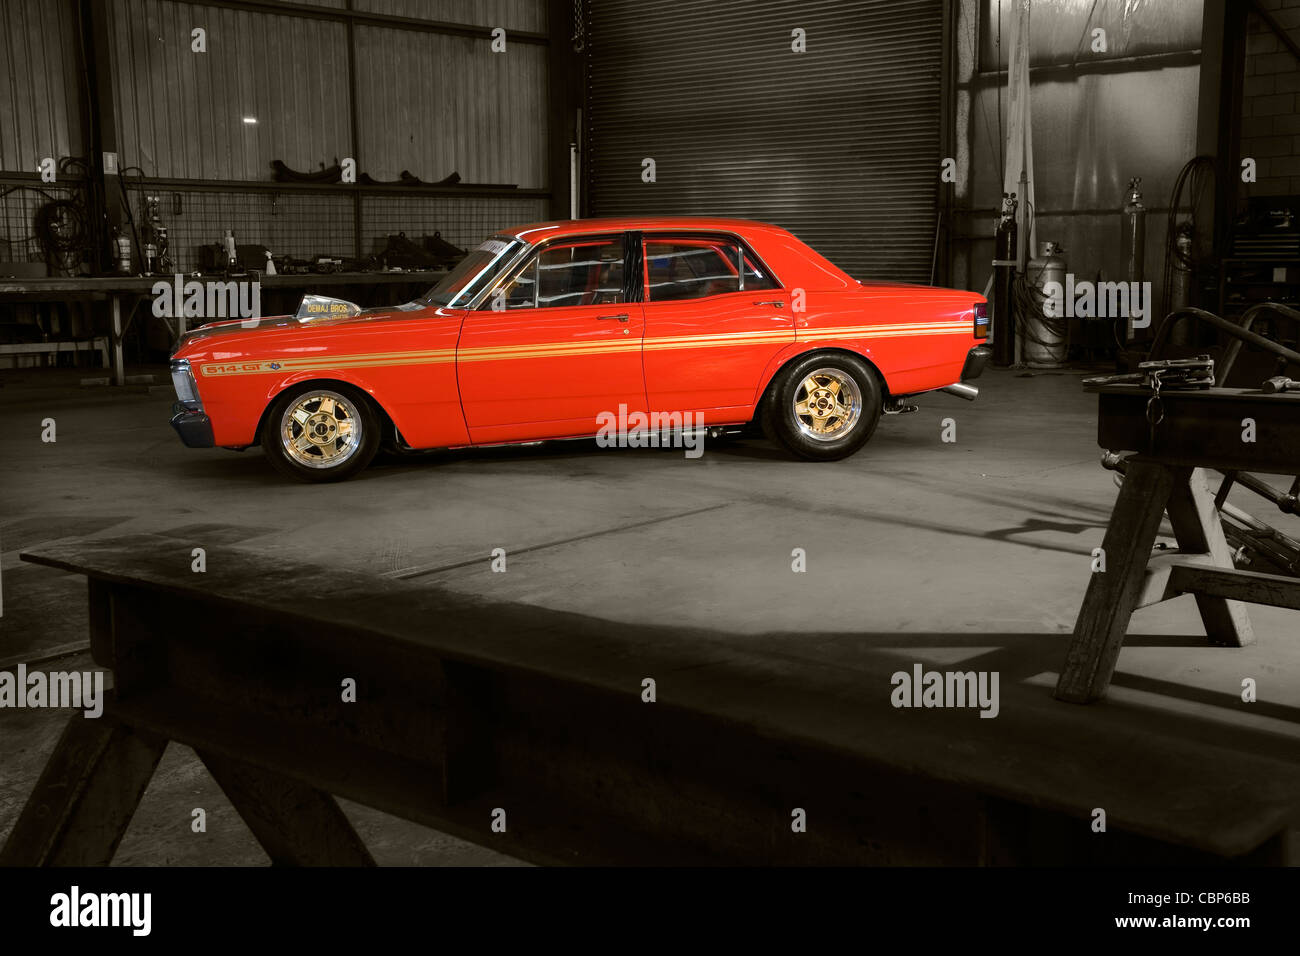 Fully Customised Classic Australian Ford Xy Gt Falcon Posed In A Factory Location And Then Photoshop